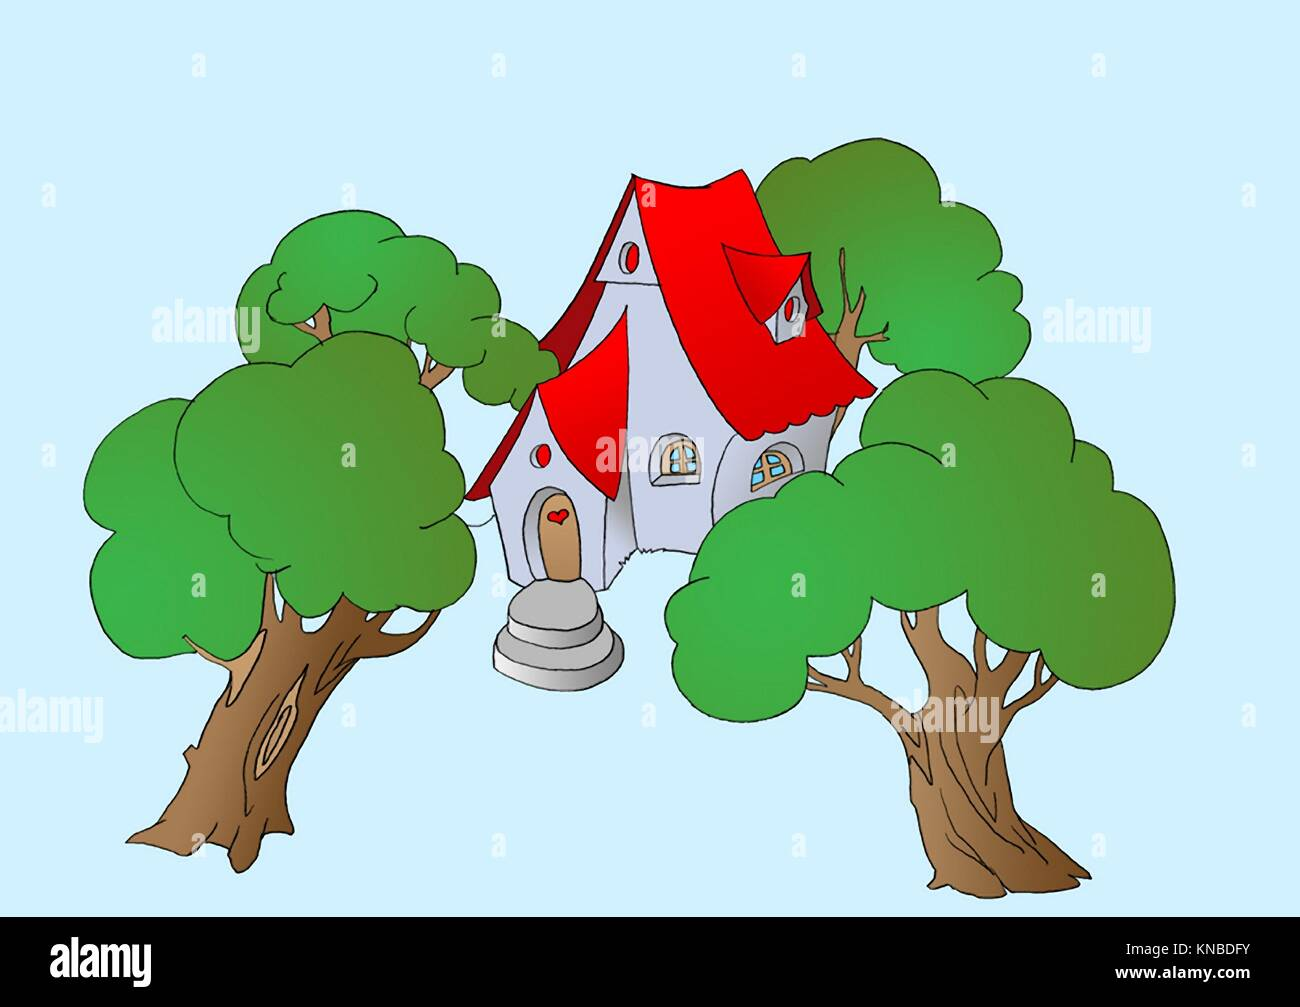 Trees Near a Small Fairy Tale House. Digital Painting Background, Illustration in primitive cartoon style character. - Stock Image